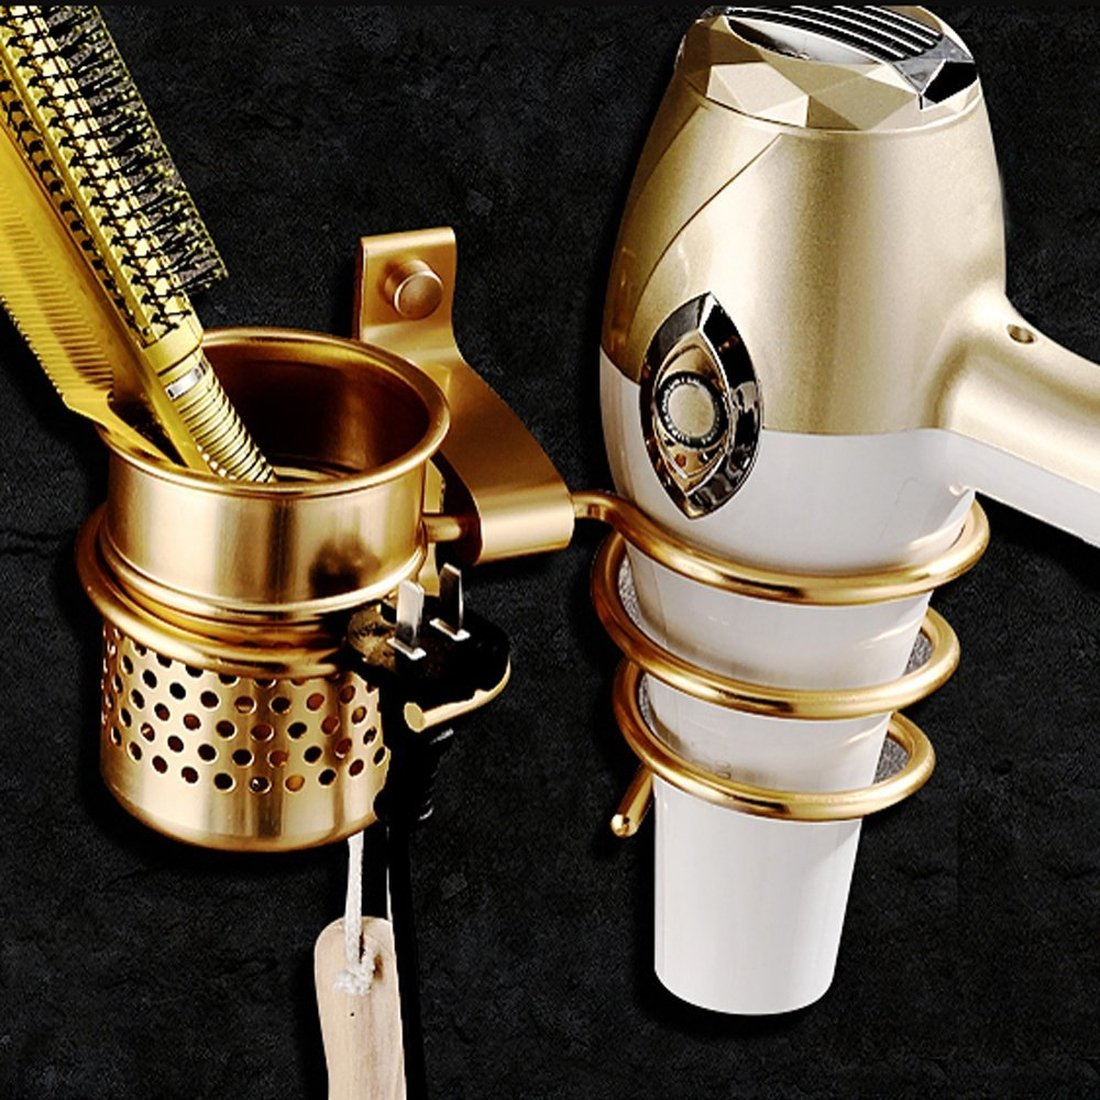 Hair Dryer Holder, Wall Mount Golden Color Hair Dryer Hanging Rack With Organizer Cup and Hook for Plug, Hair Blow Dryer Shelf for Bathroom Washroom Storage Accessories (Golden) Speeding Love